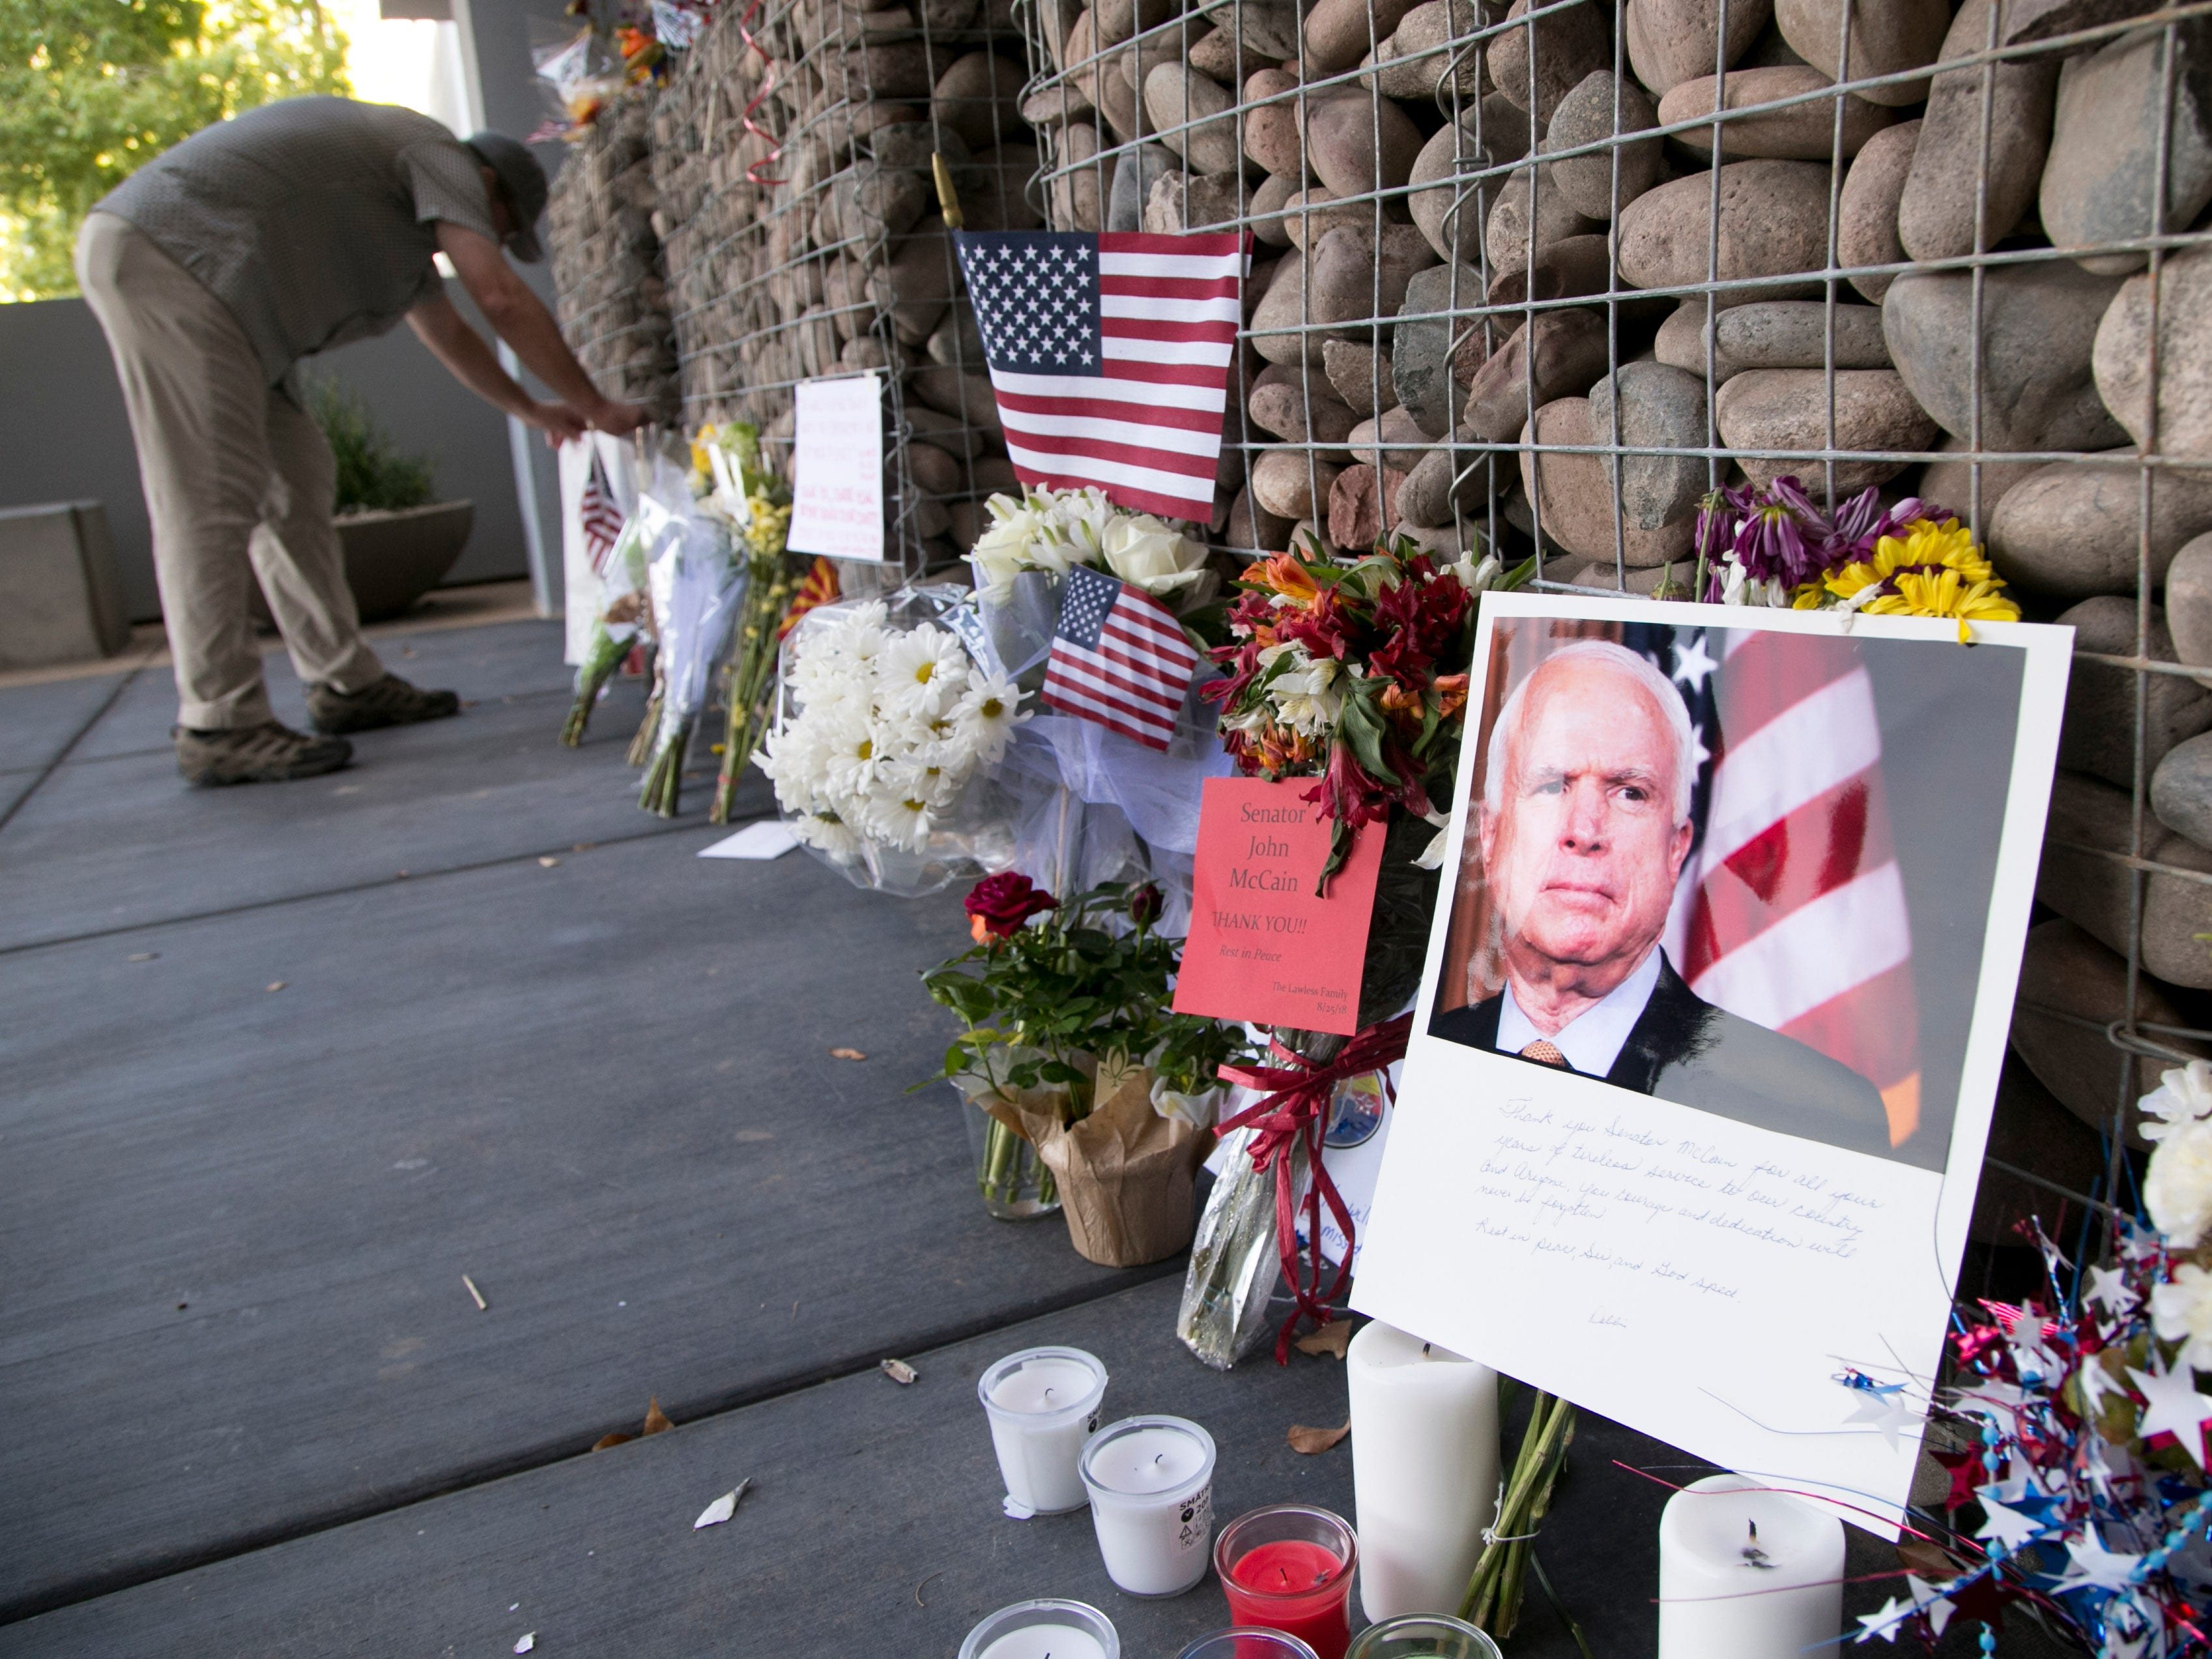 James Olsen of Columbia, S.C., looks at a memorial for Sen. John McCain at McCain's office in Phoenix on Aug. 27, 2018.